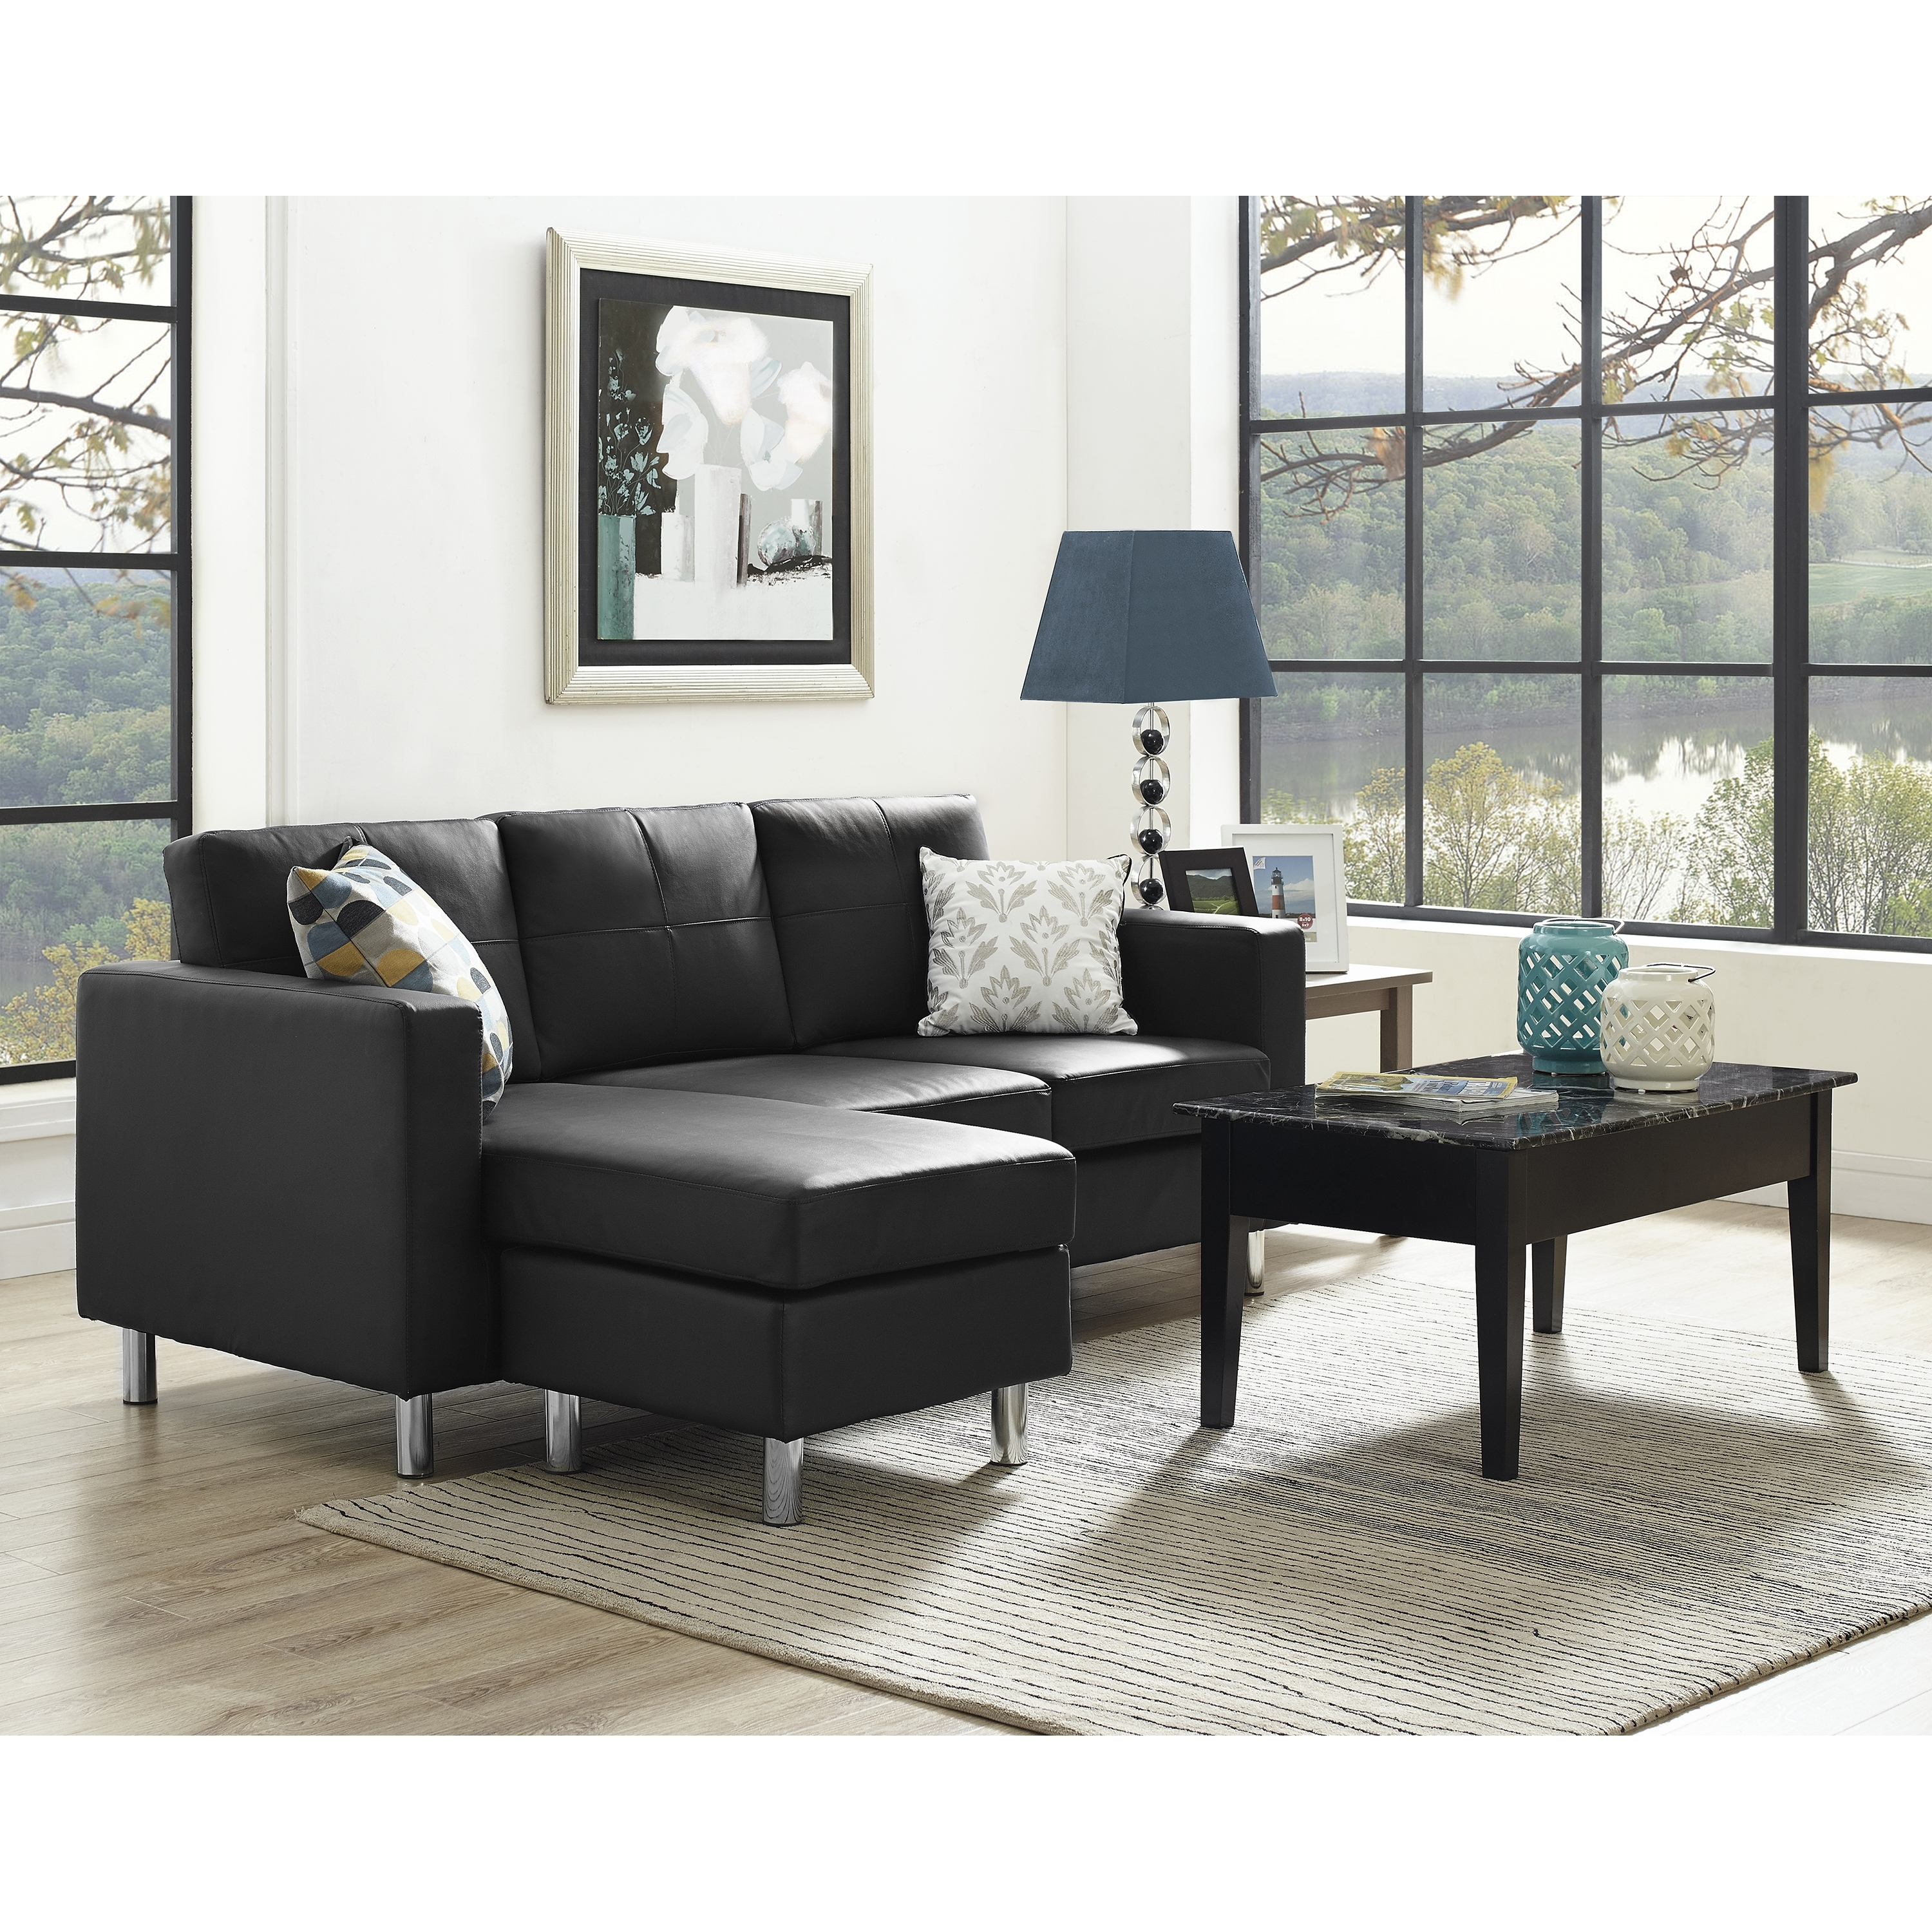 Best Sears Sectional Sofa 79 In Costco Leather Sectional Sofa With Within Sears Sectional Sofas (View 4 of 10)